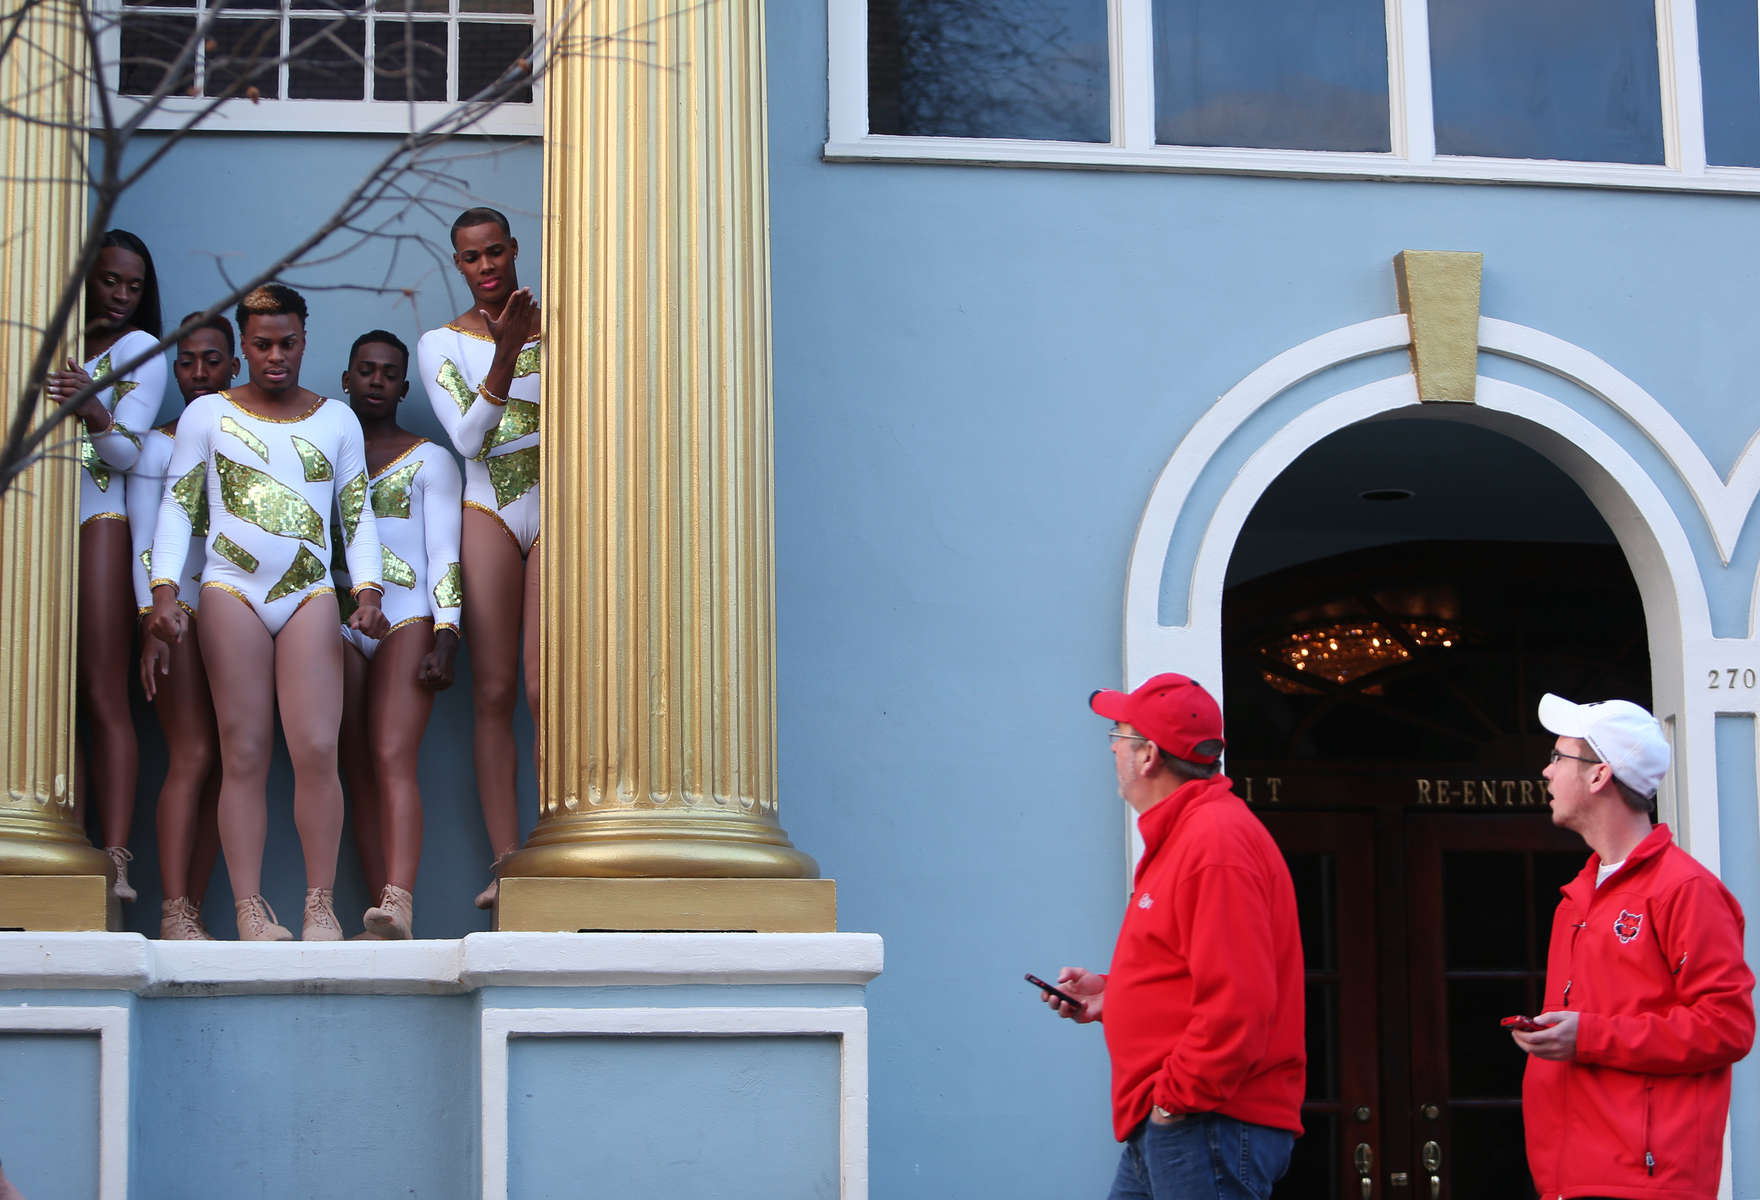 The Prancing Elites pose during a photo shoot with a local photographer on Dauphin Street in downtown Mobile.